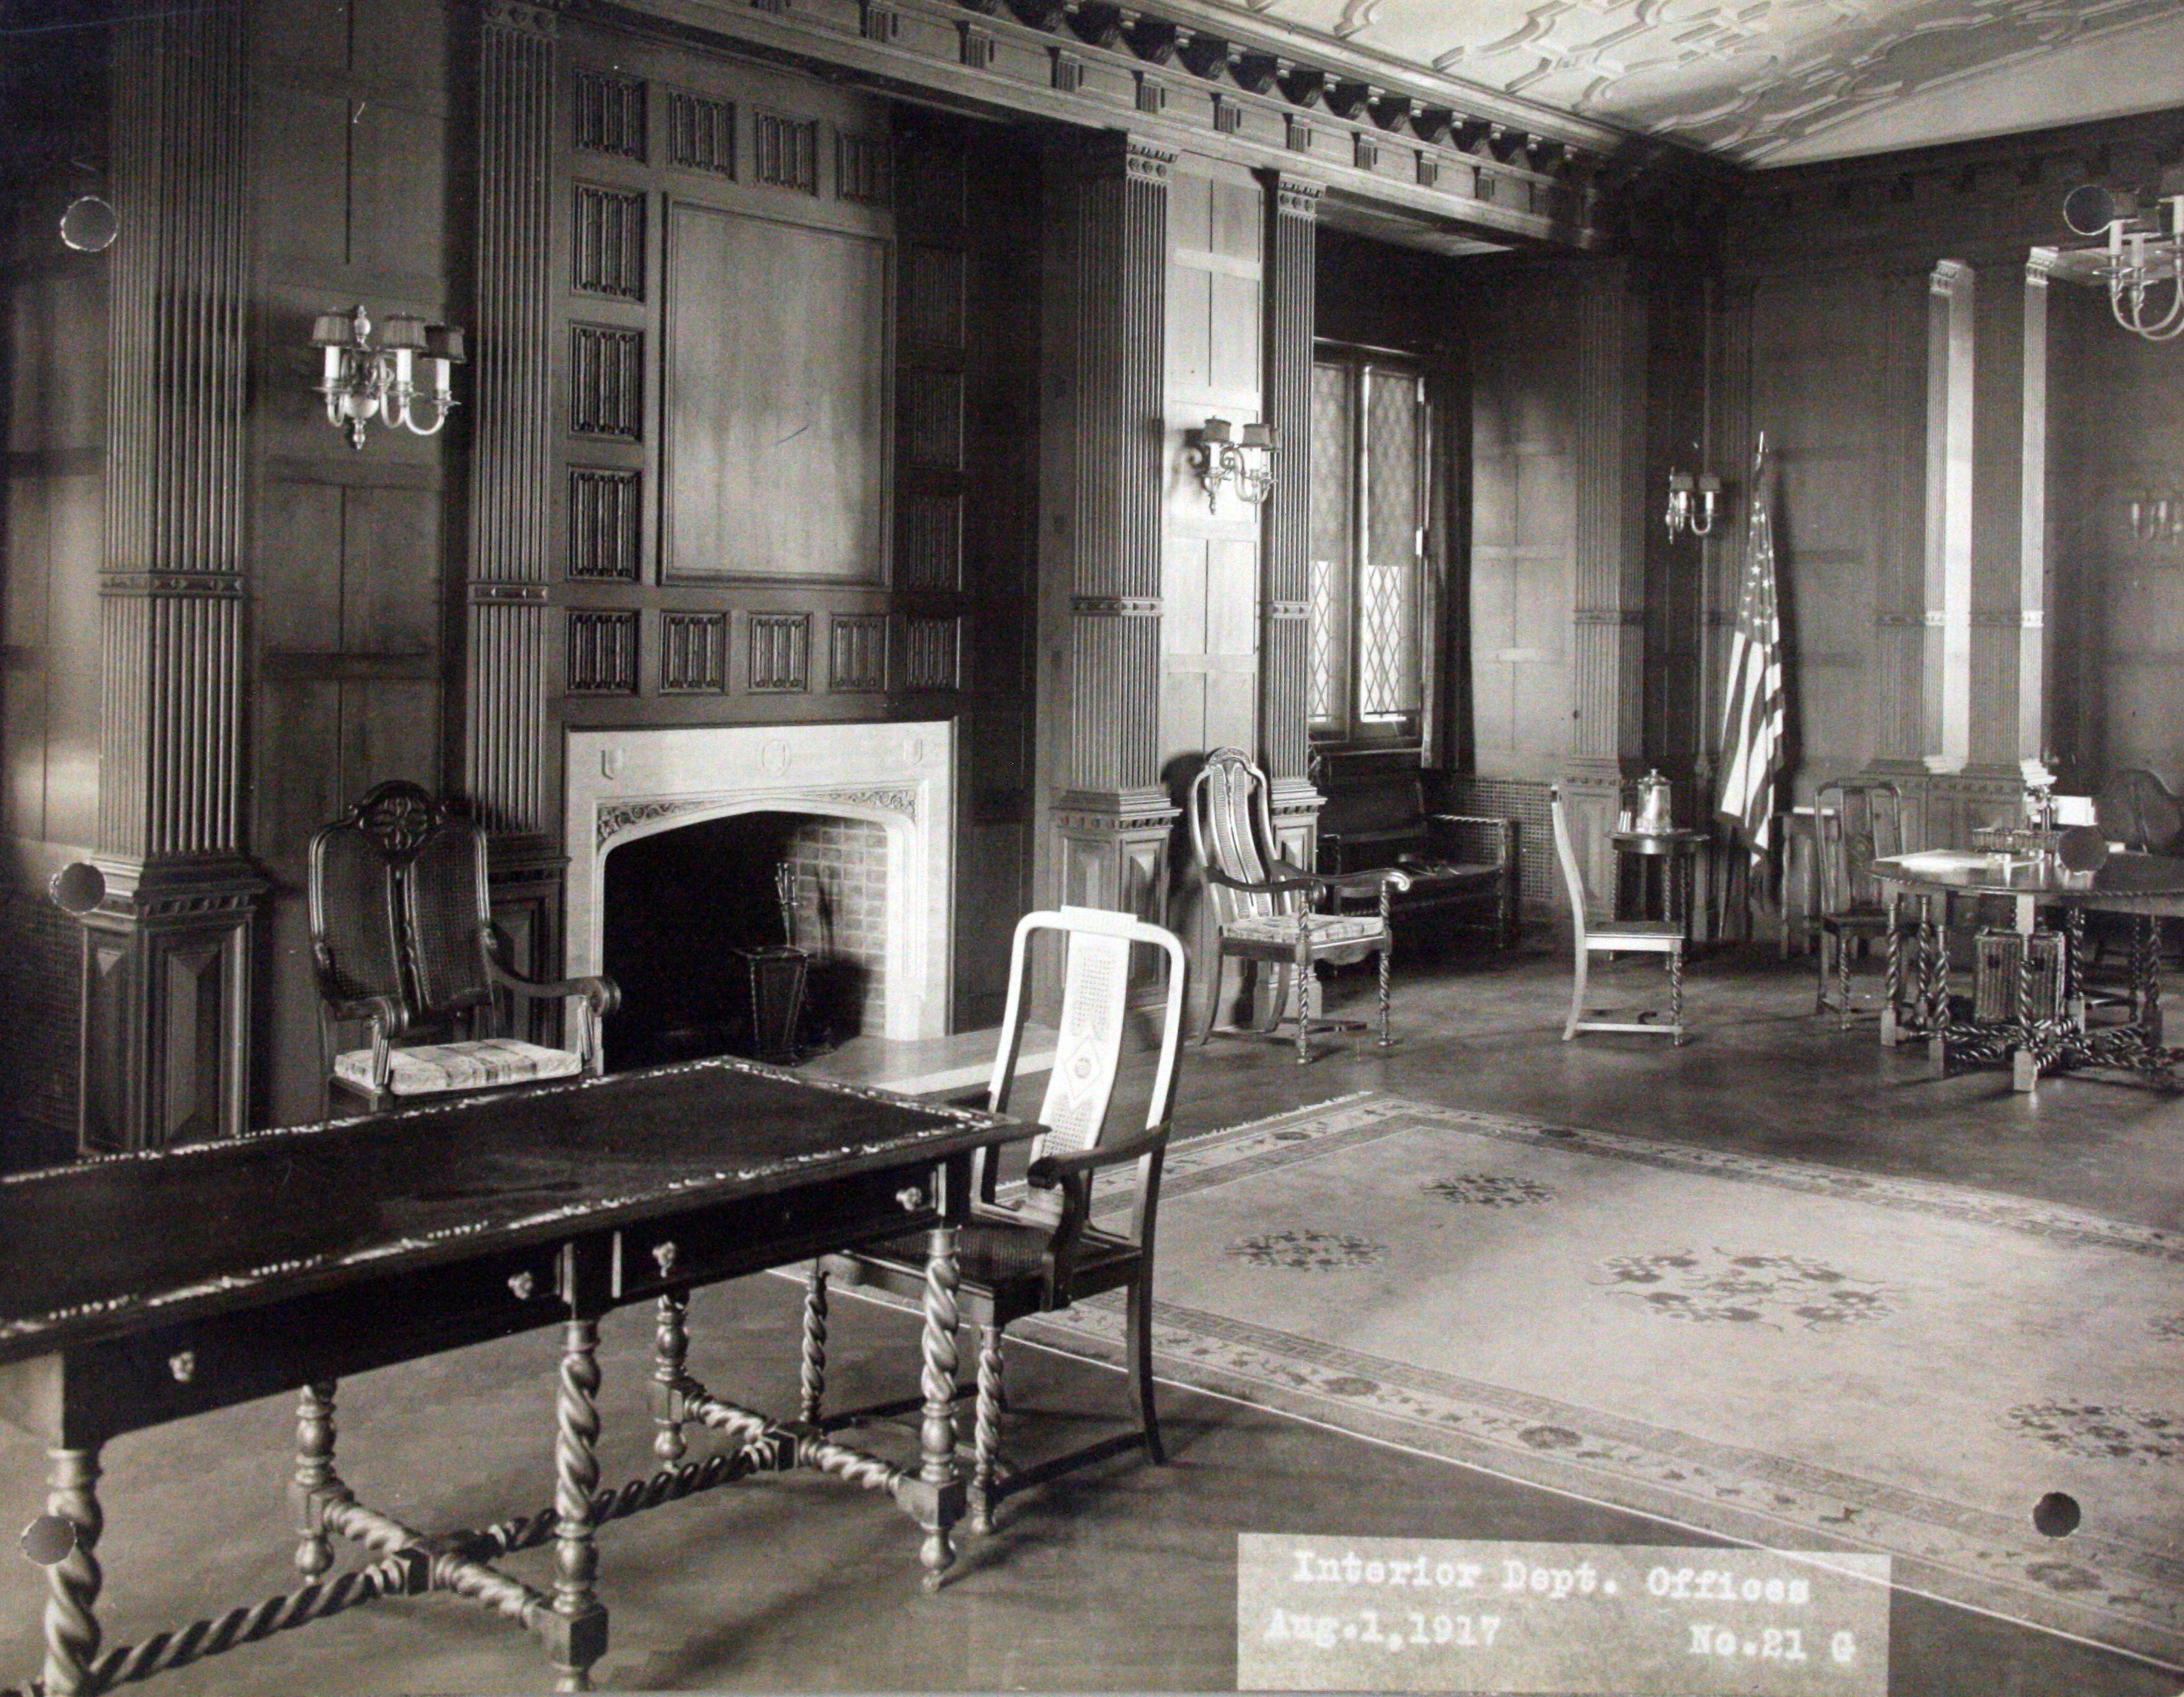 Furnished suite for the Secretary of the Interior, August 1917.